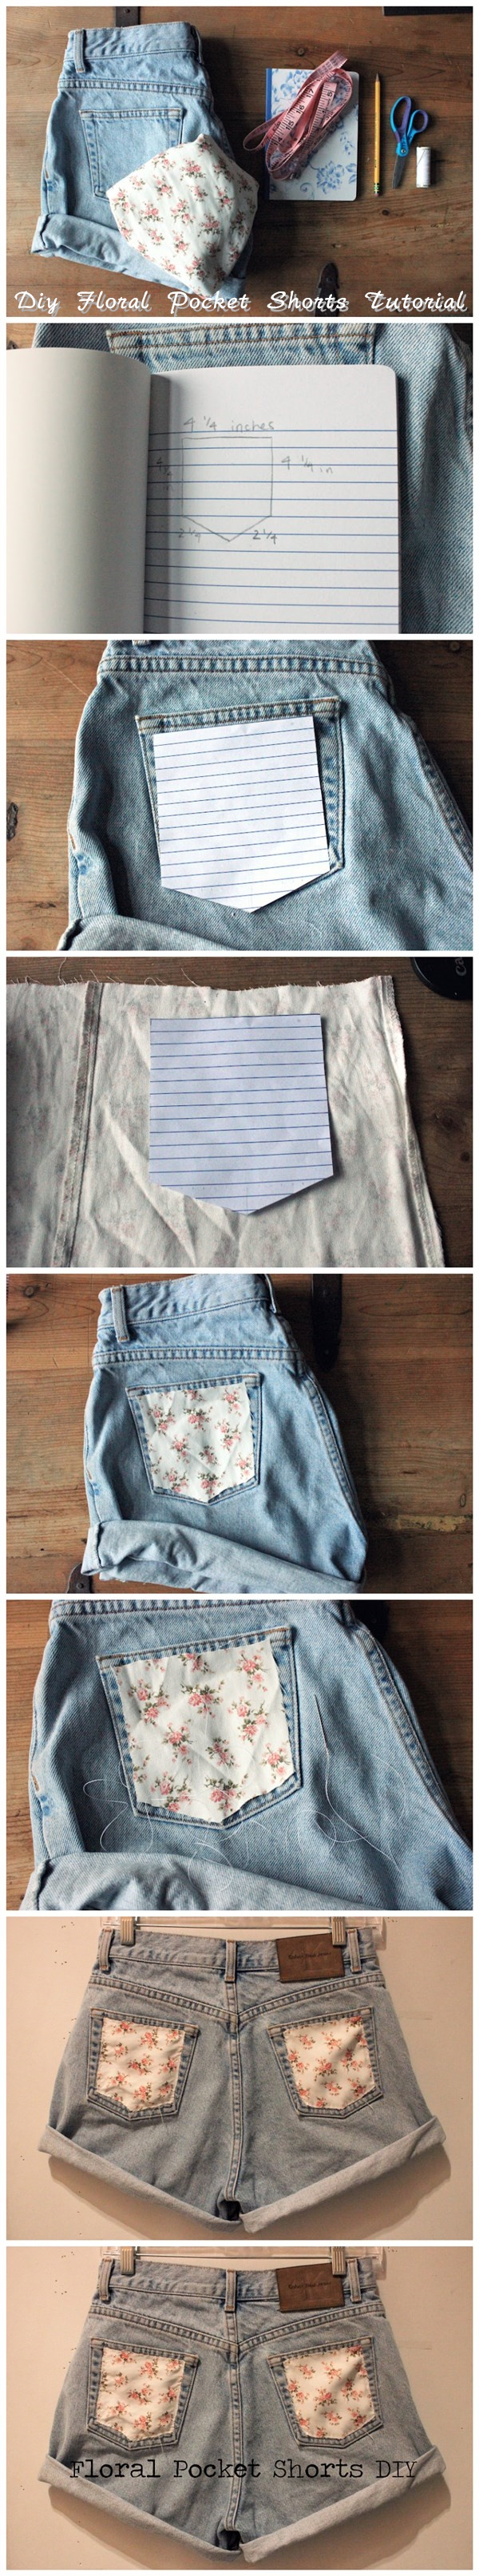 Diy Floral Pocket Shorts Tutorial